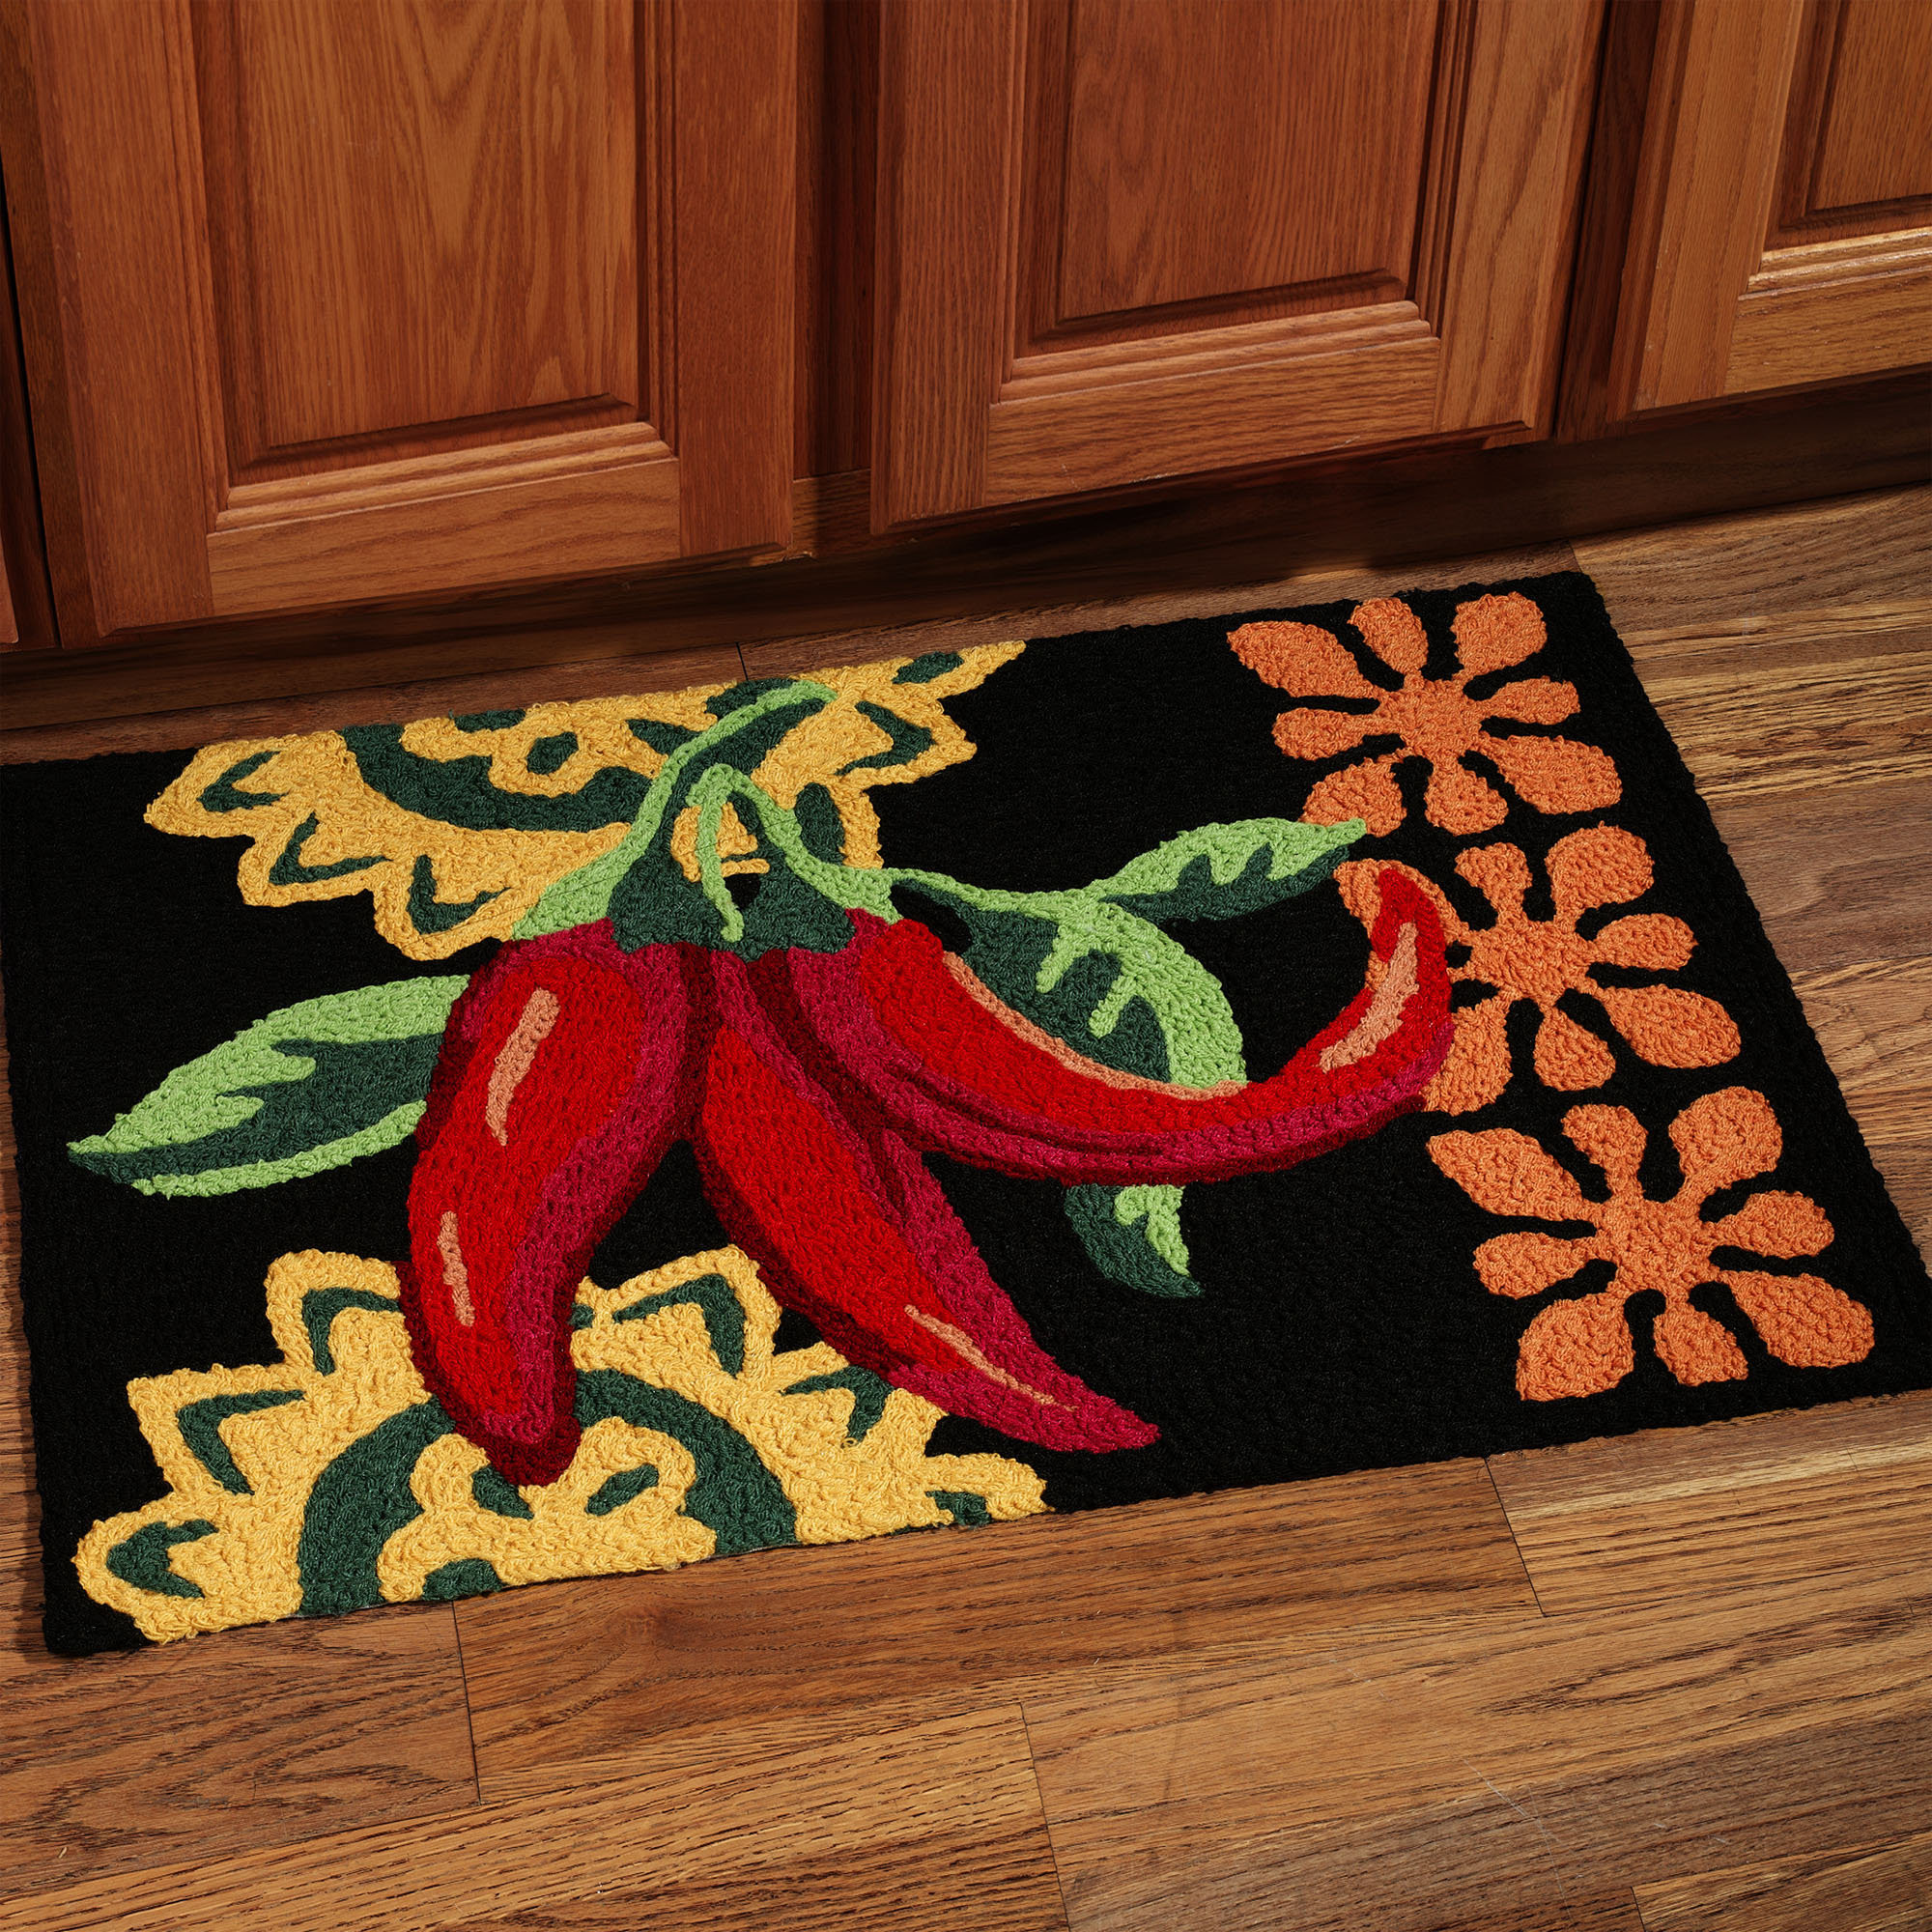 Best ideas about Chili Pepper Kitchen Decor . Save or Pin Best Kitchen Rugs and Mats Selections Now.